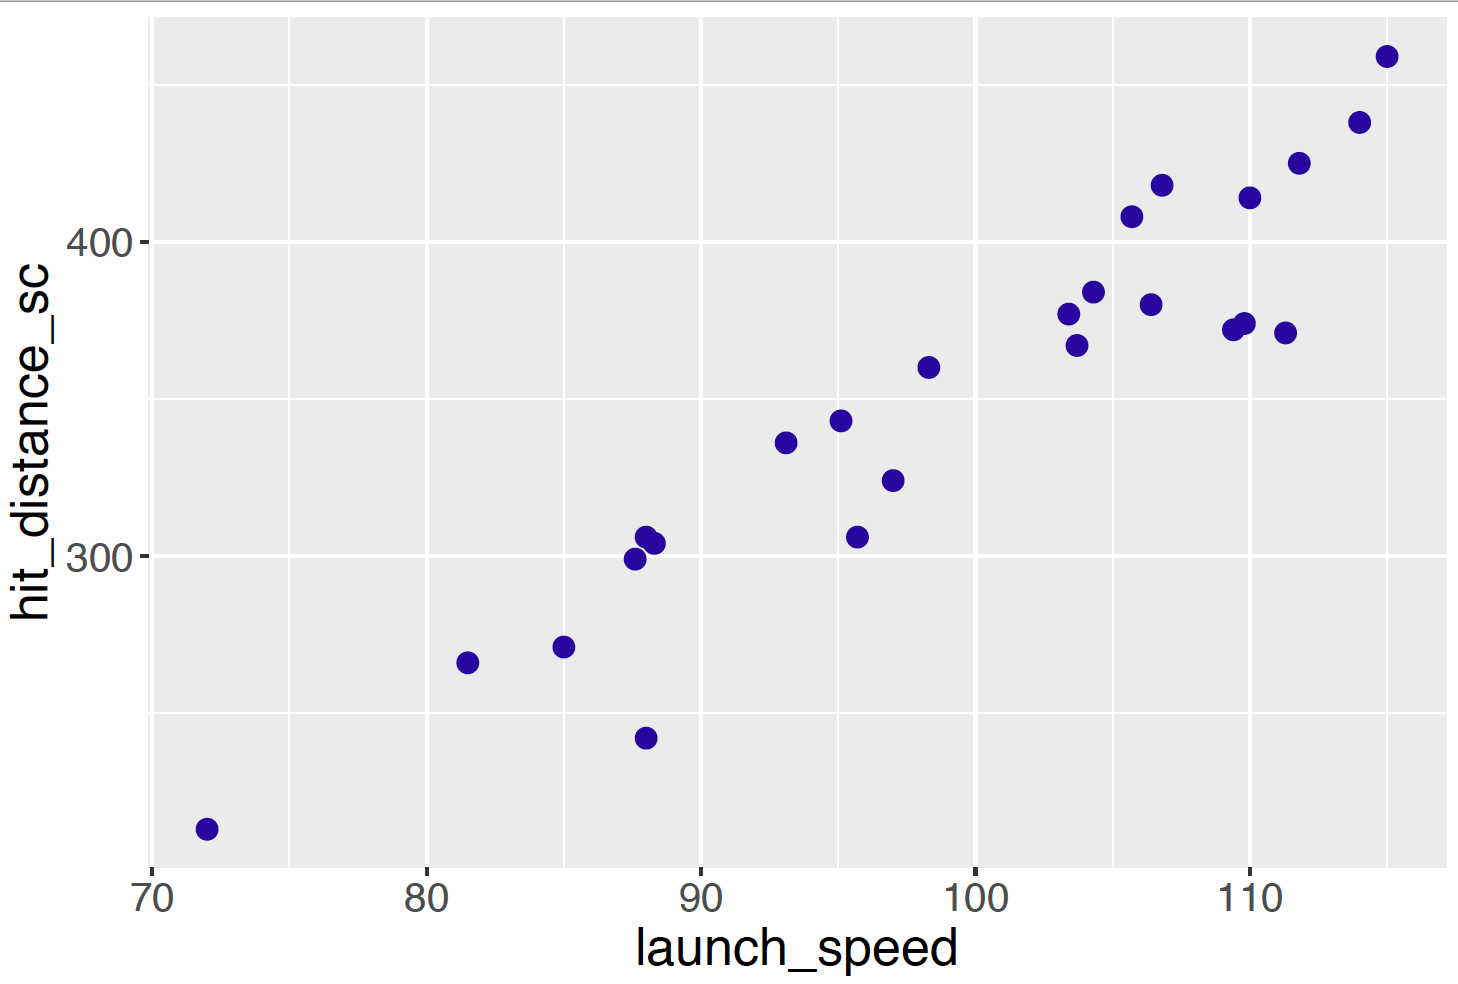 Scatterplot of launch speed and distance traveled for batted balls of Mike Trout during the 2018 season.